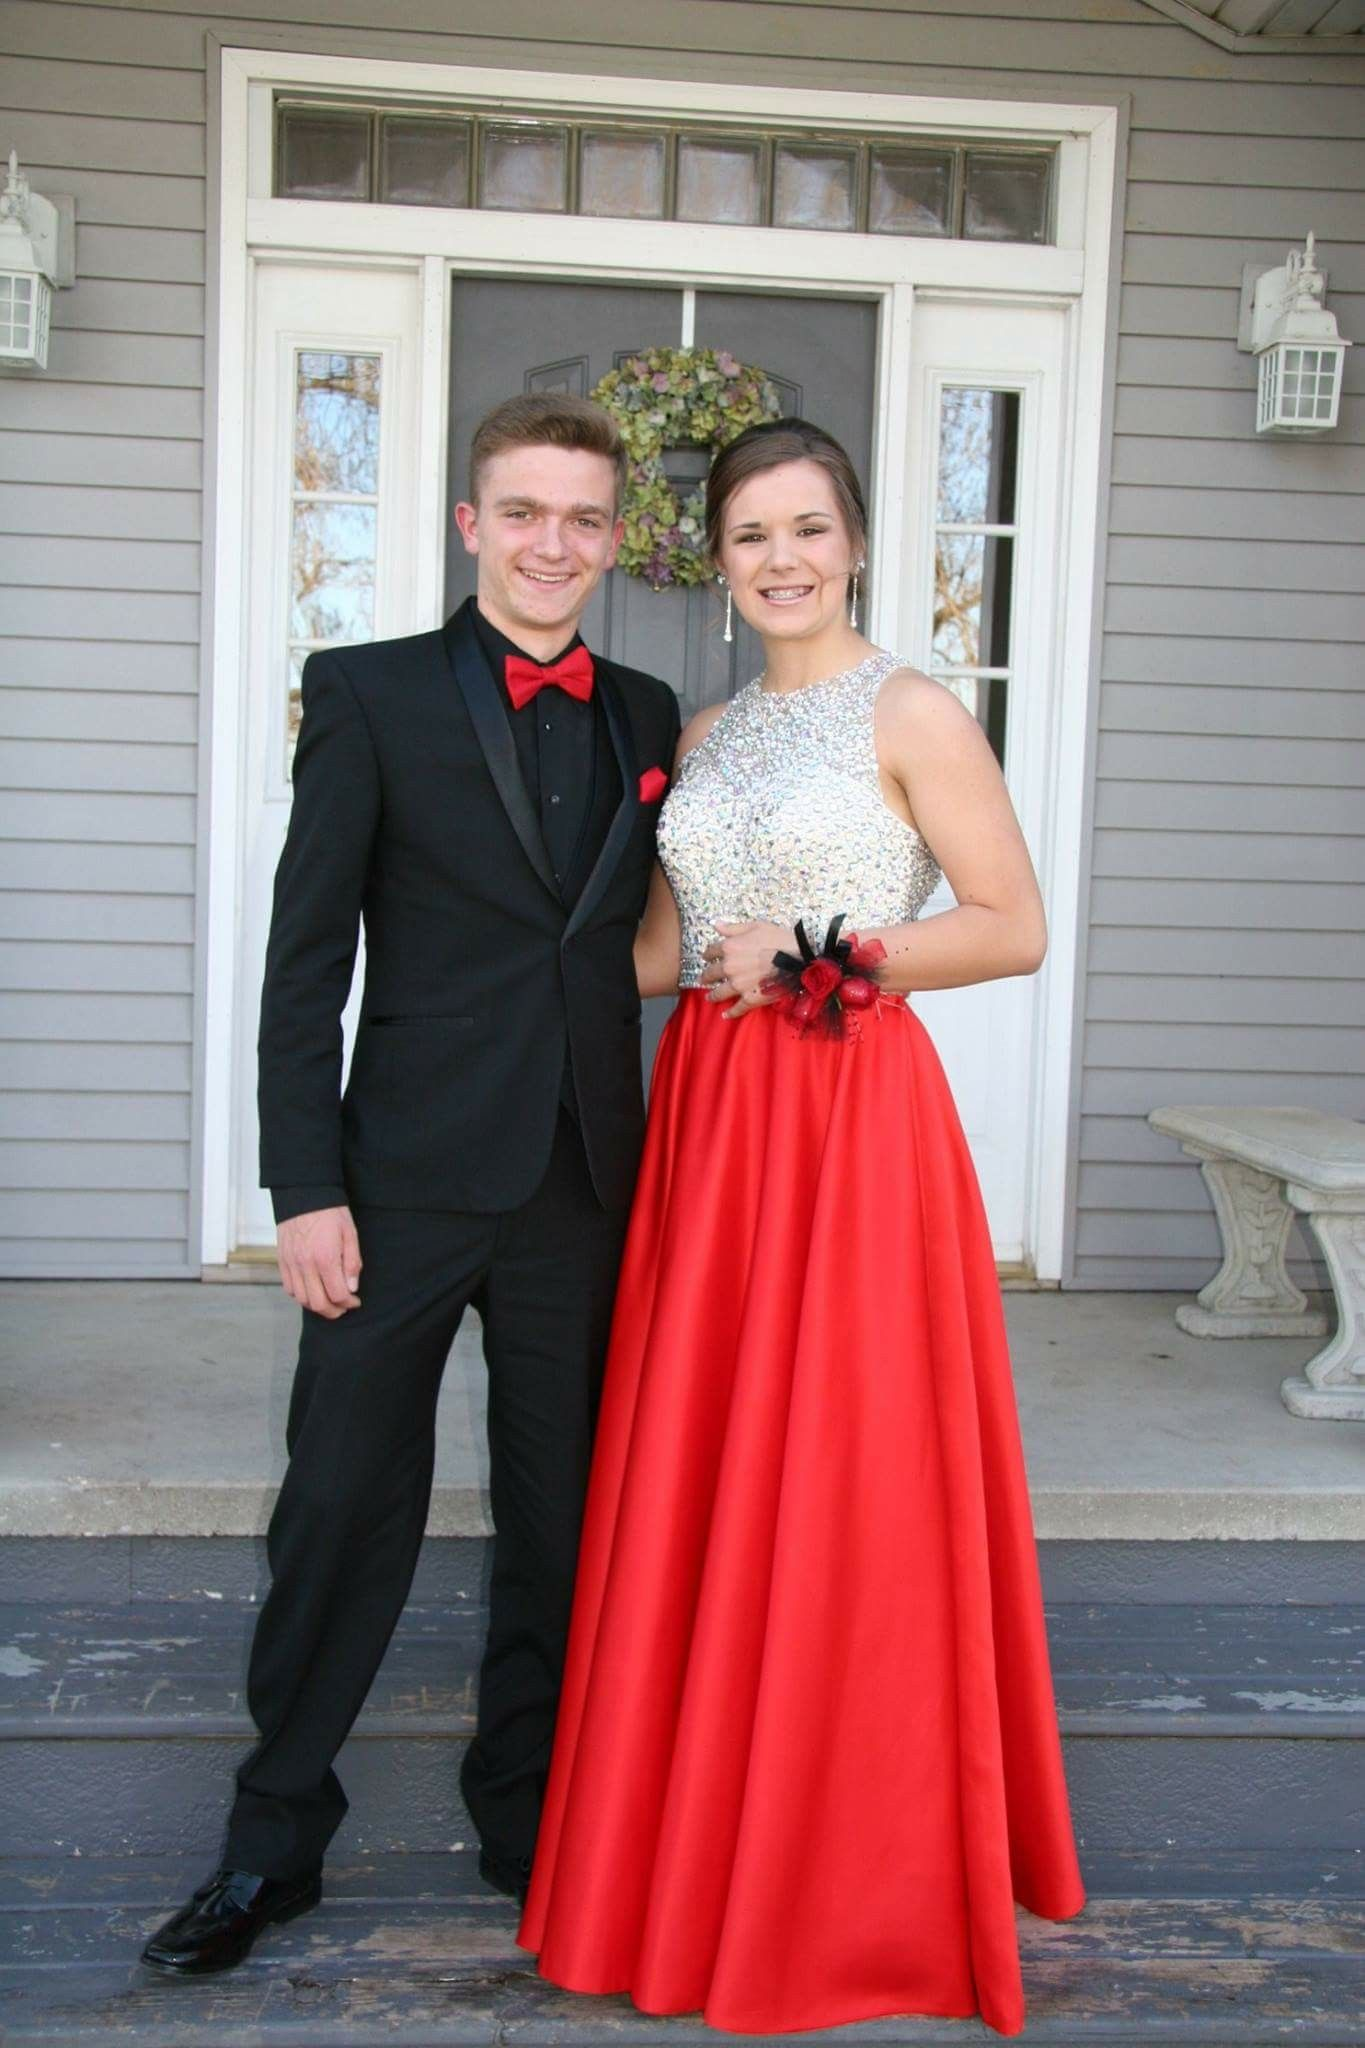 Prom Red Tux With Red Dress | Prom Tux & Dress | Pinterest | Prom ...